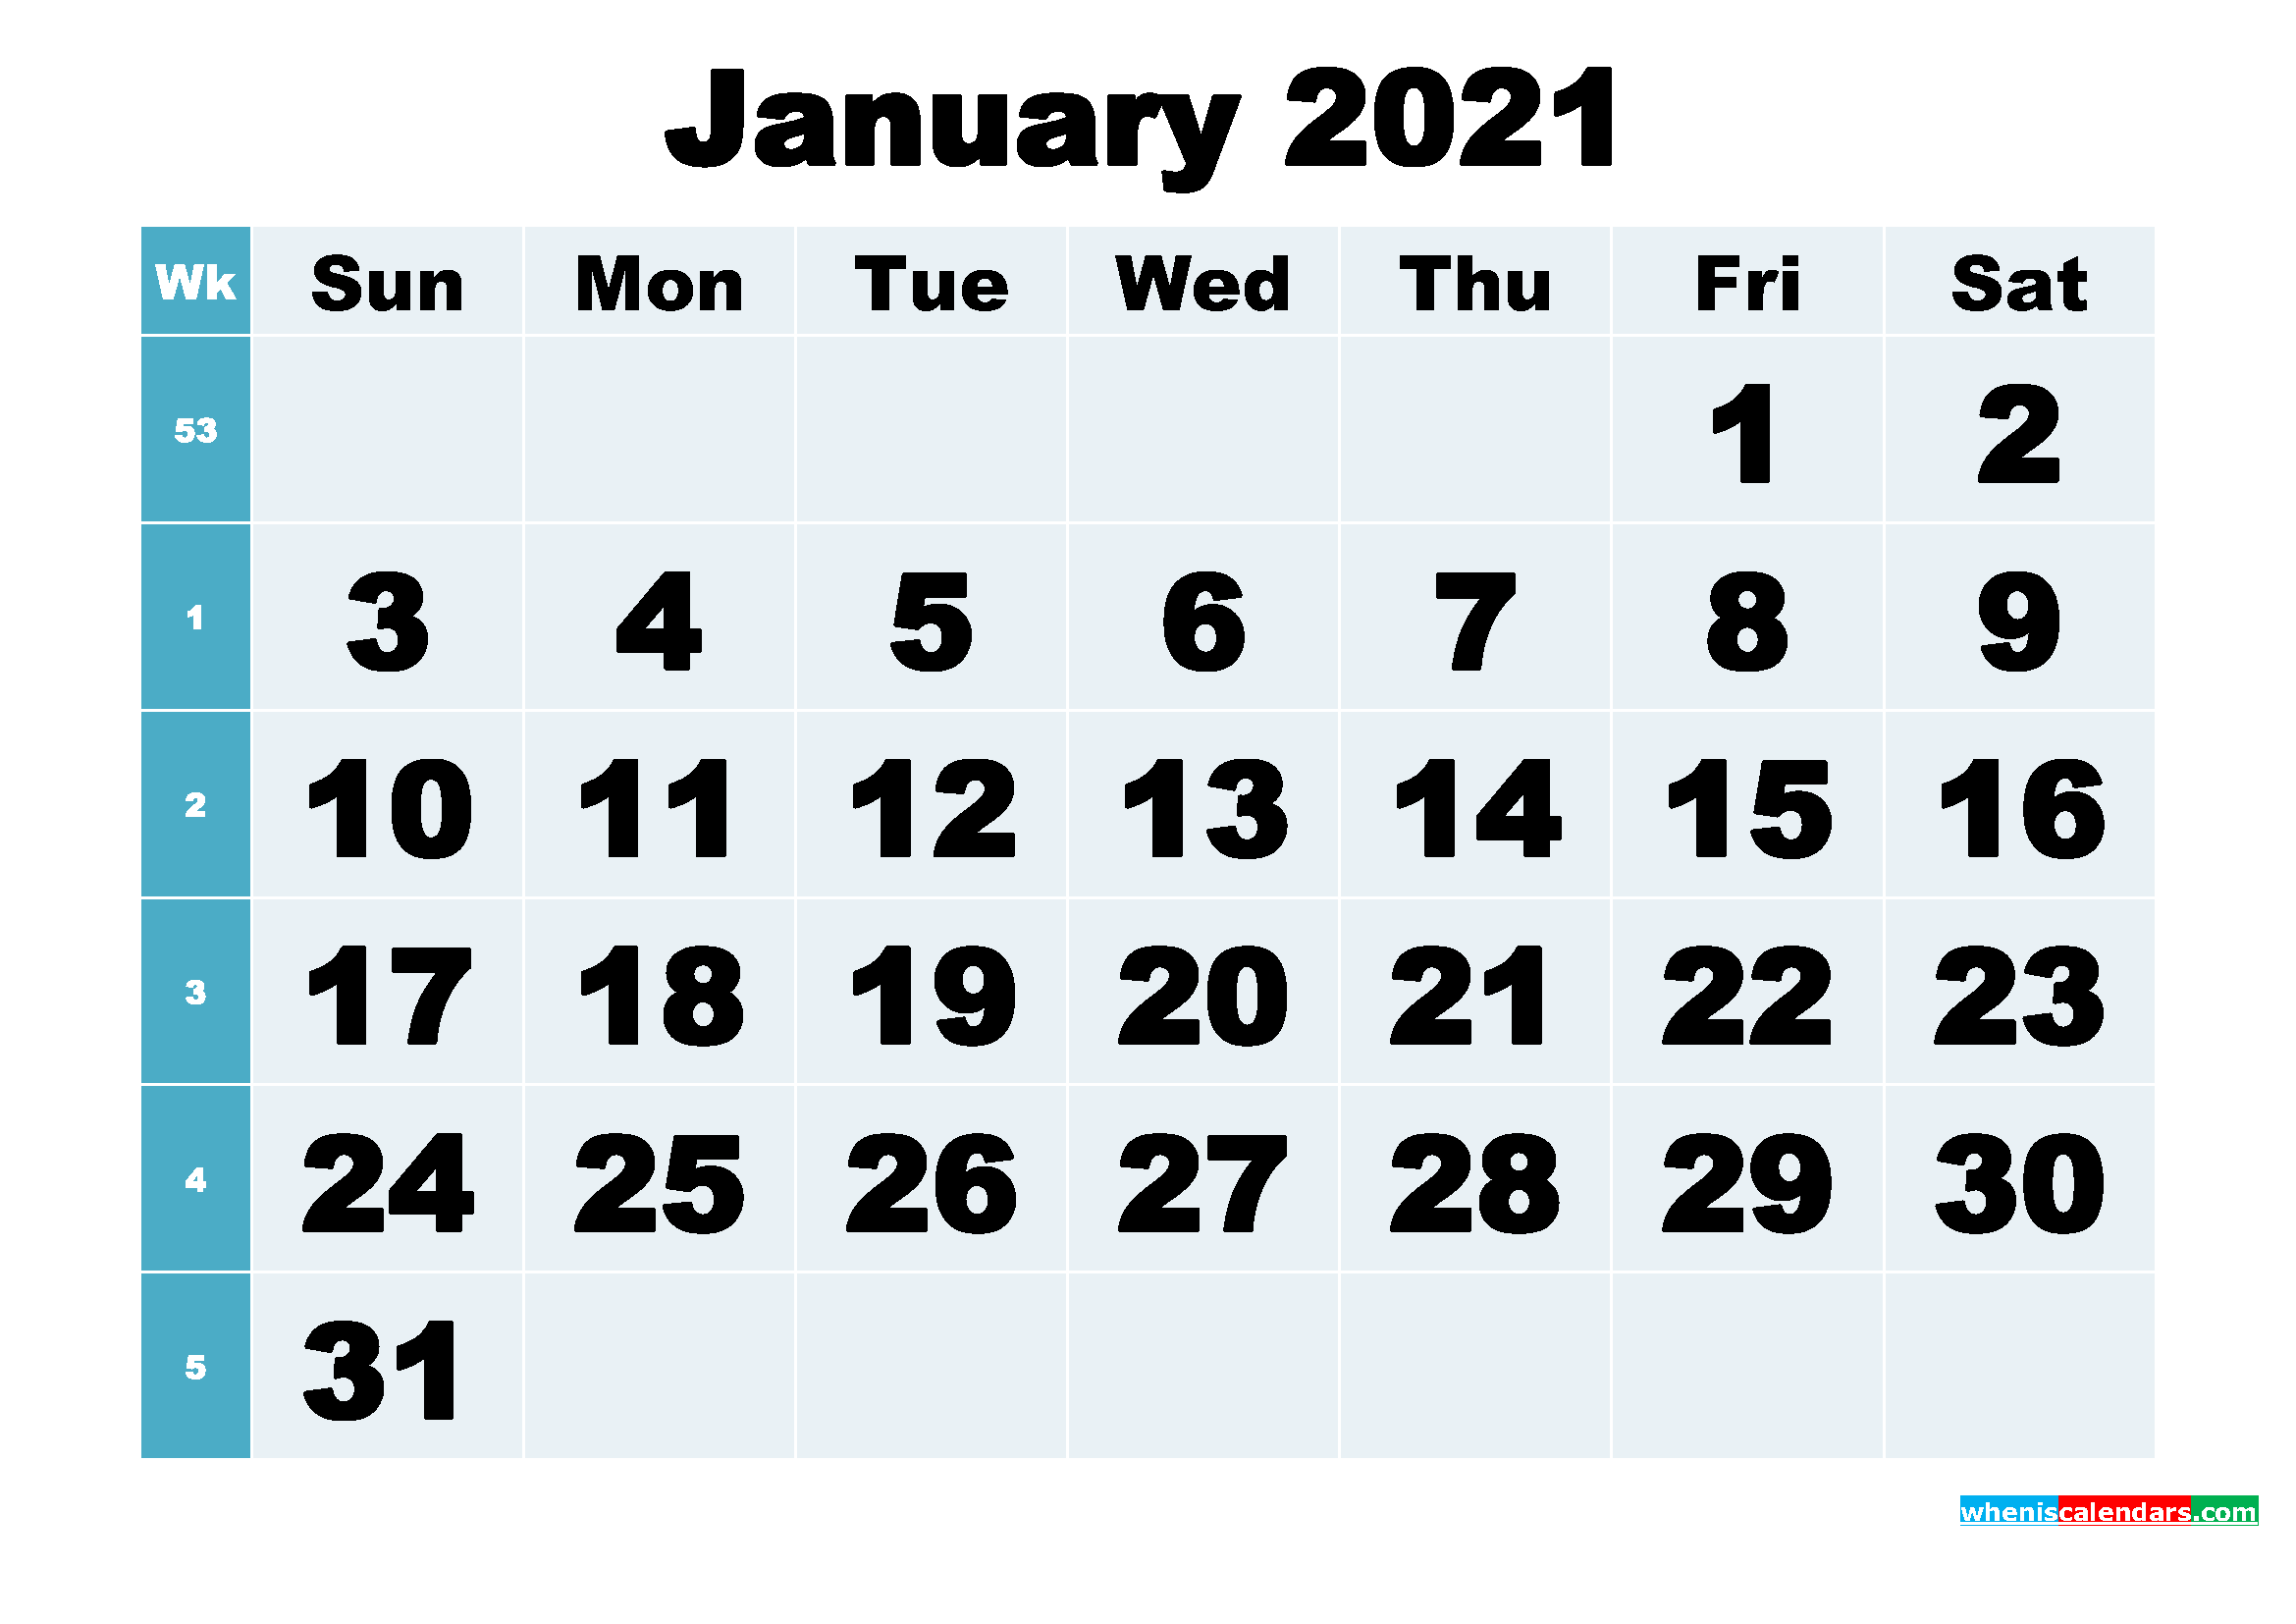 Free Printable January 2021 Calendar Word, PDF, Image